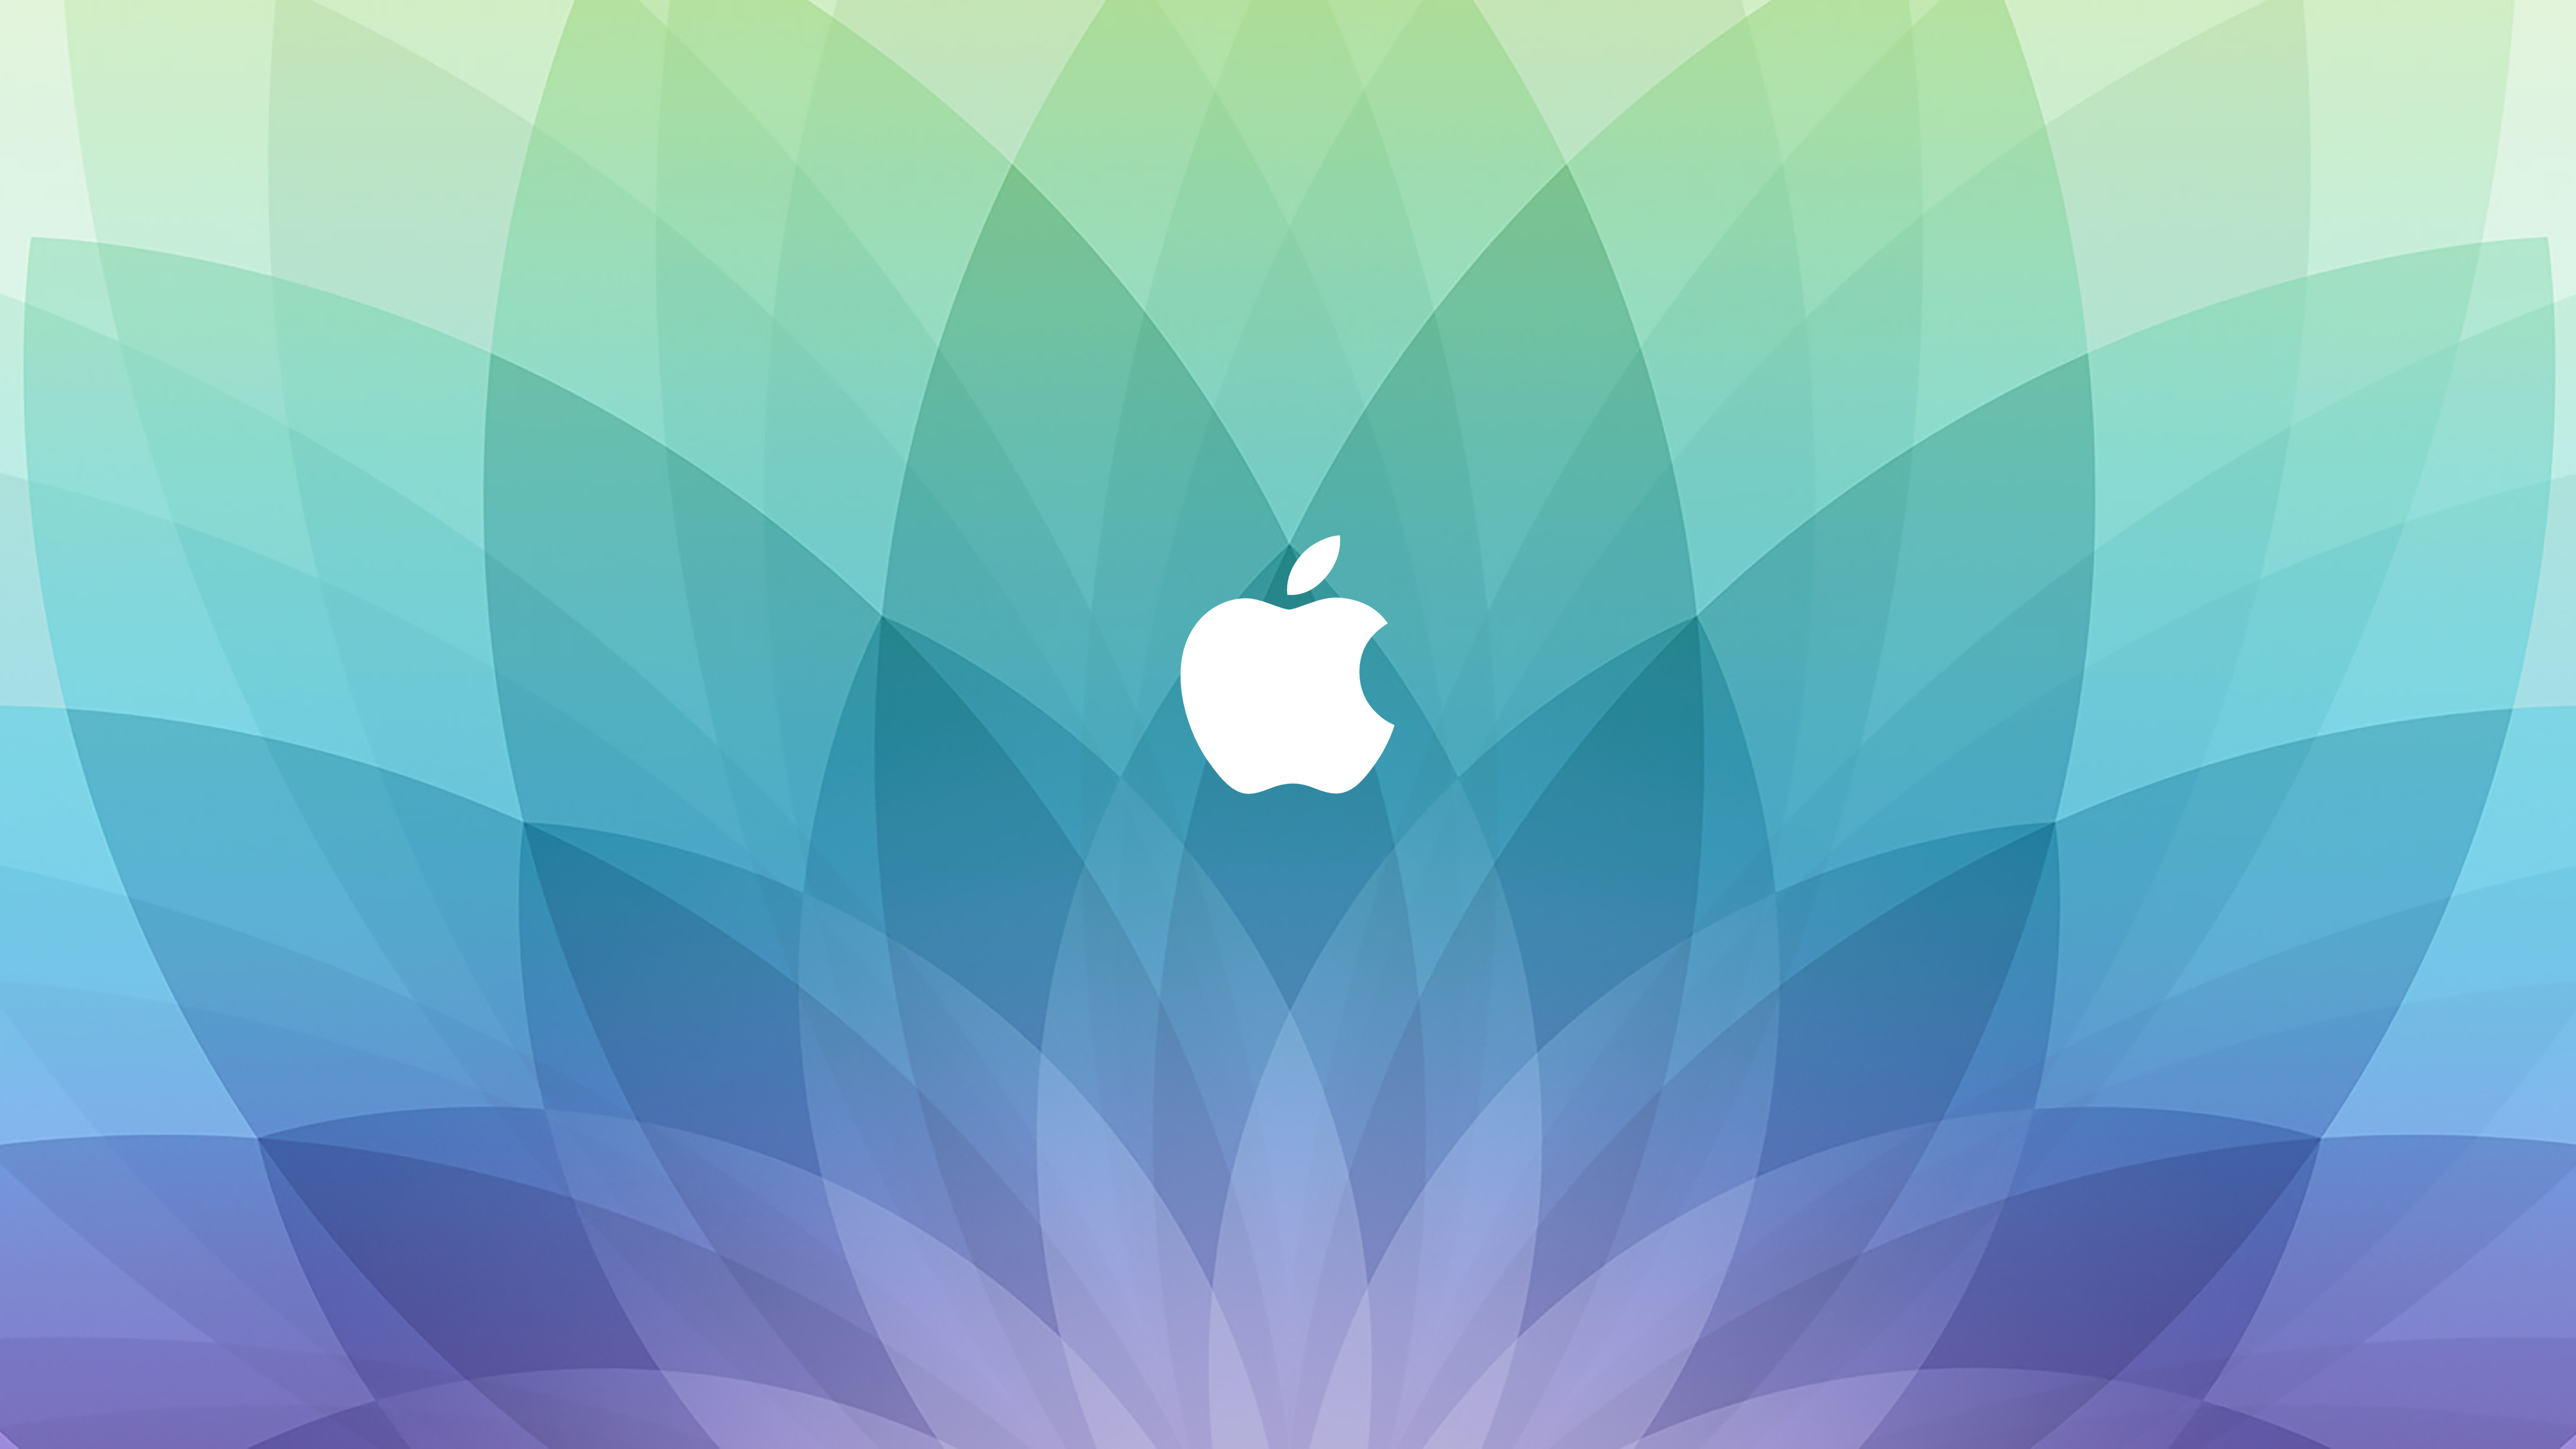 Apple Watch event wallpapers Spring Forward 6016x3384